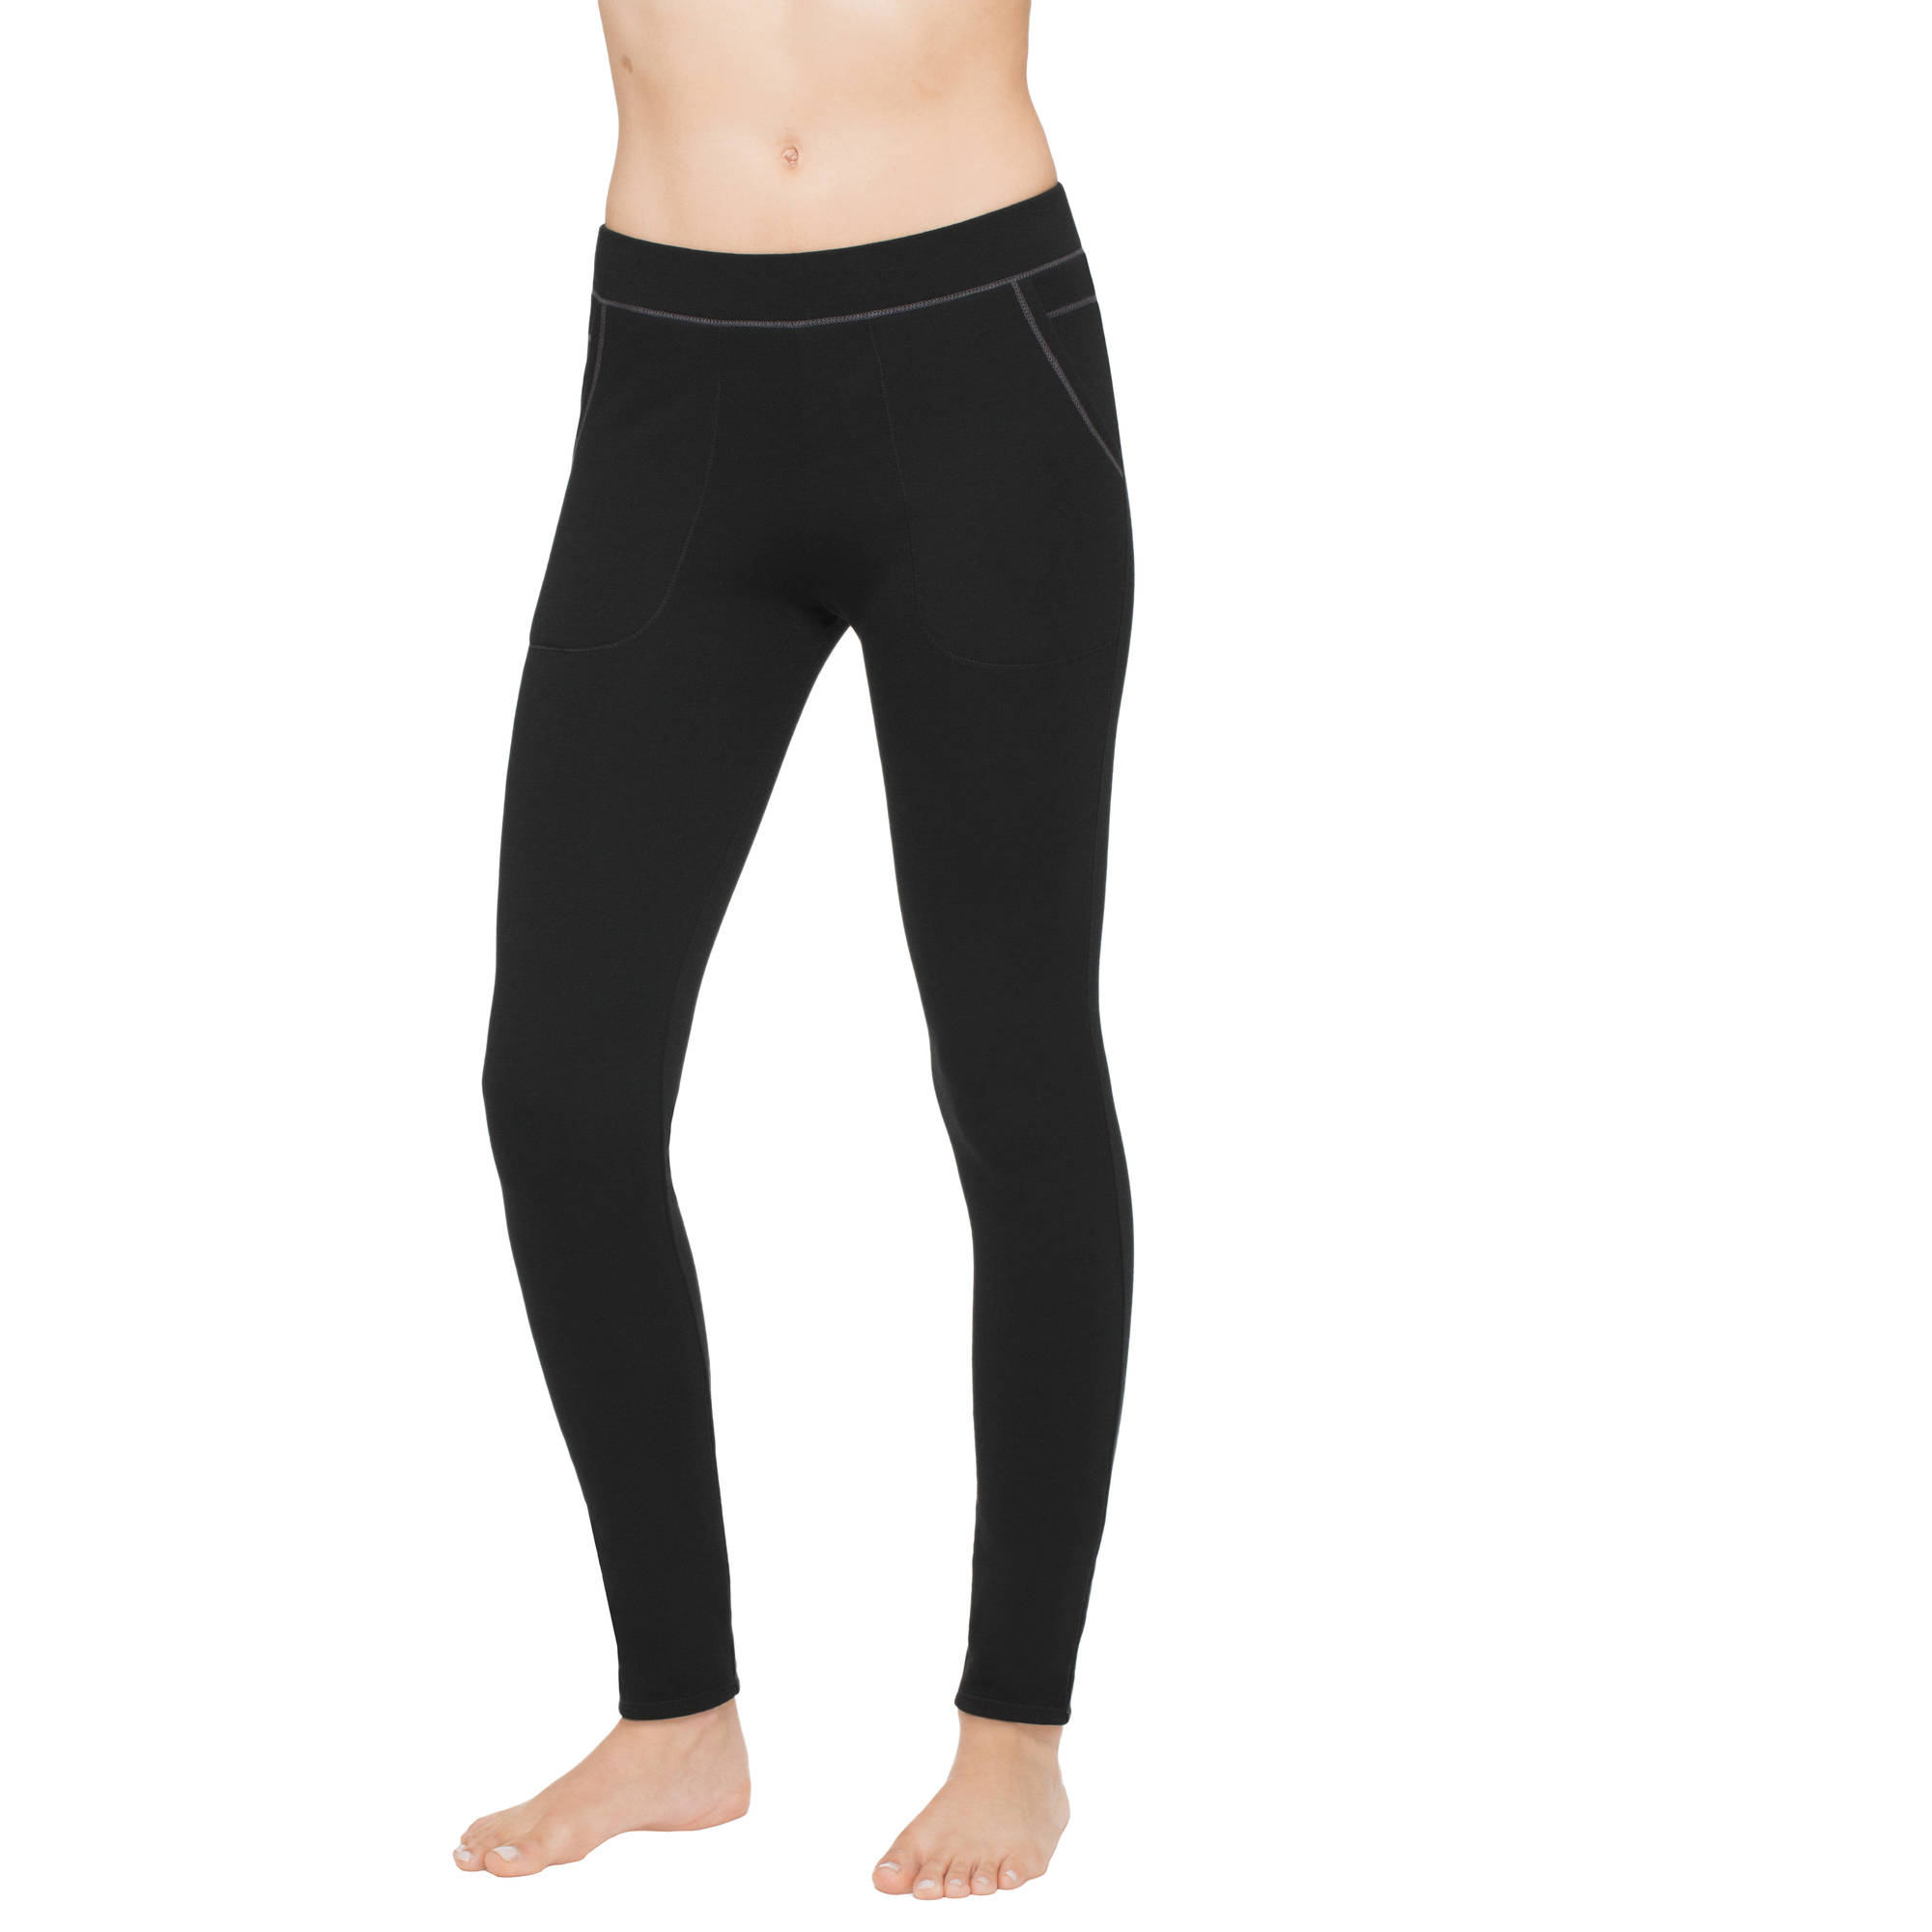 ClimateRight by Cuddl Duds Comfort Core Warm Underwear legging